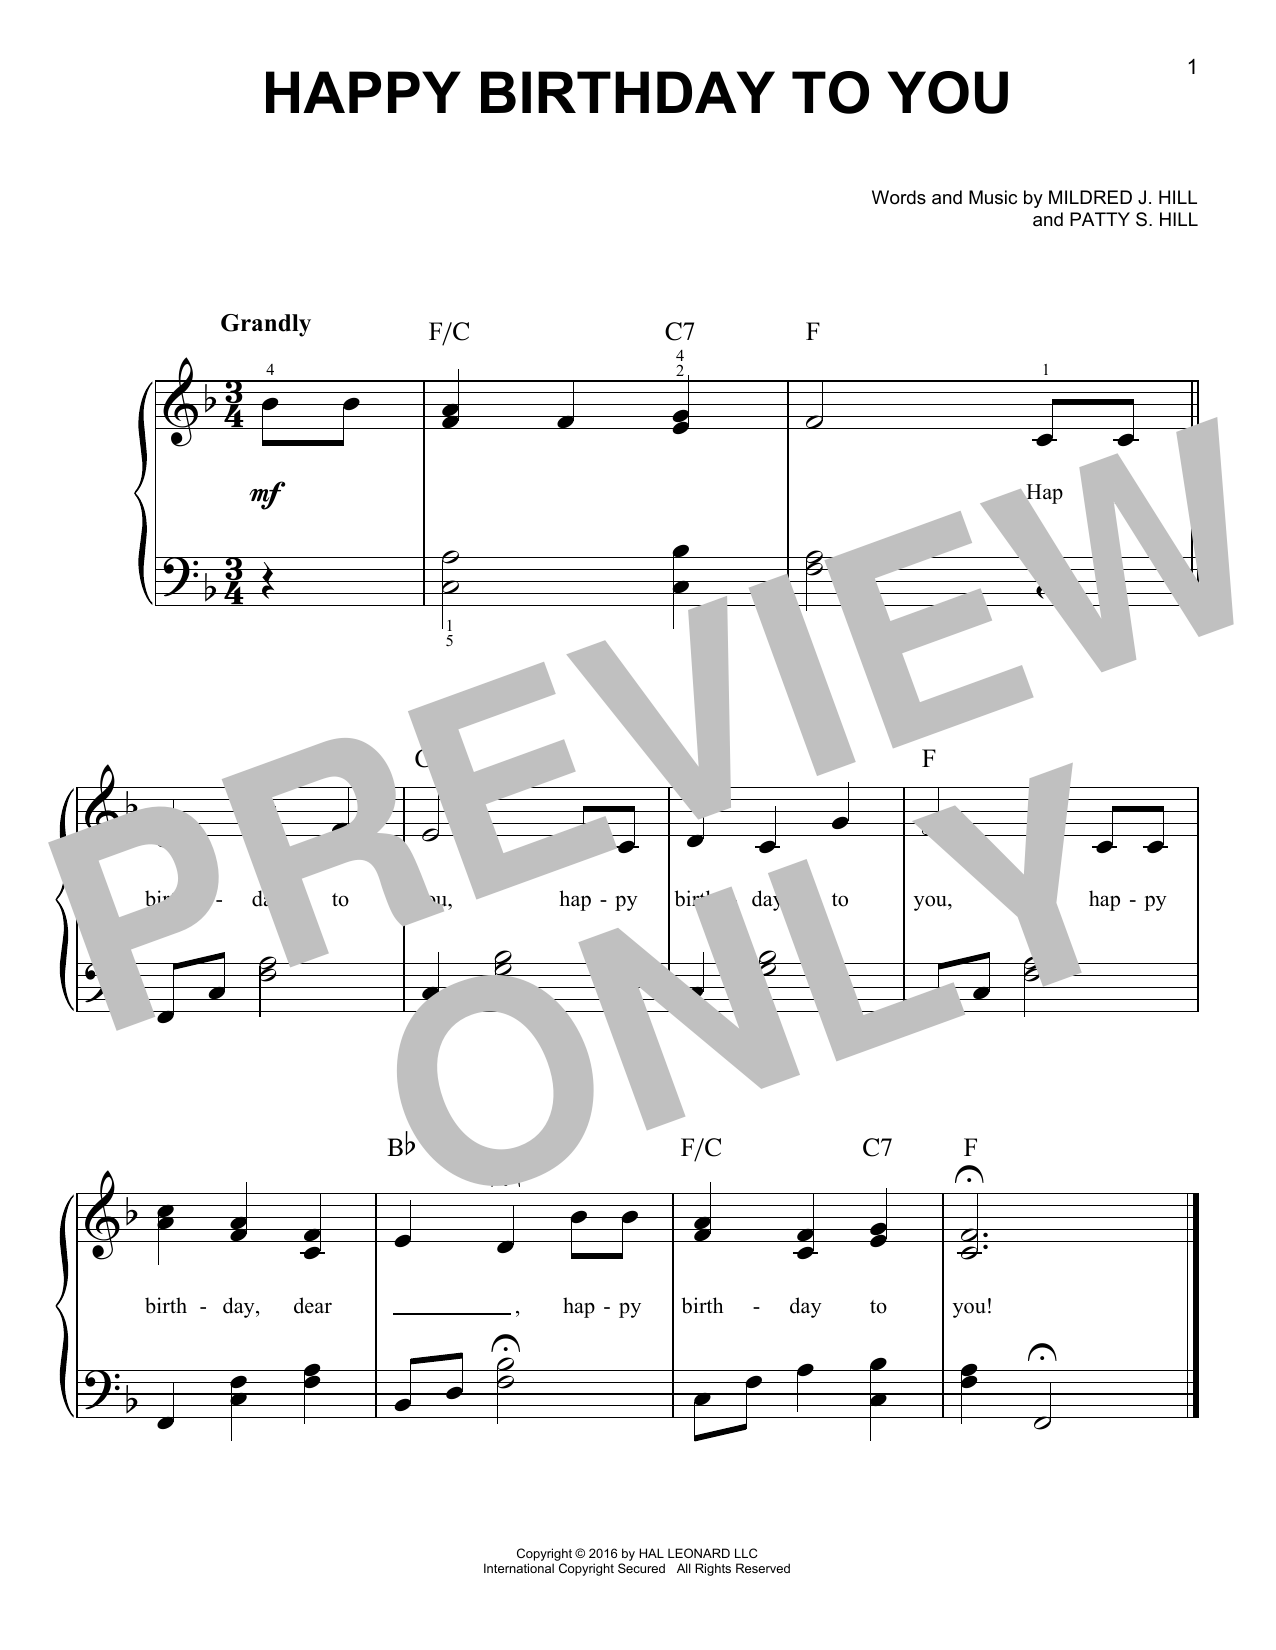 Happy Birthday To You sheet music for piano solo by Mildred J. Hill and Patty Smith Hill. Score Image Preview.